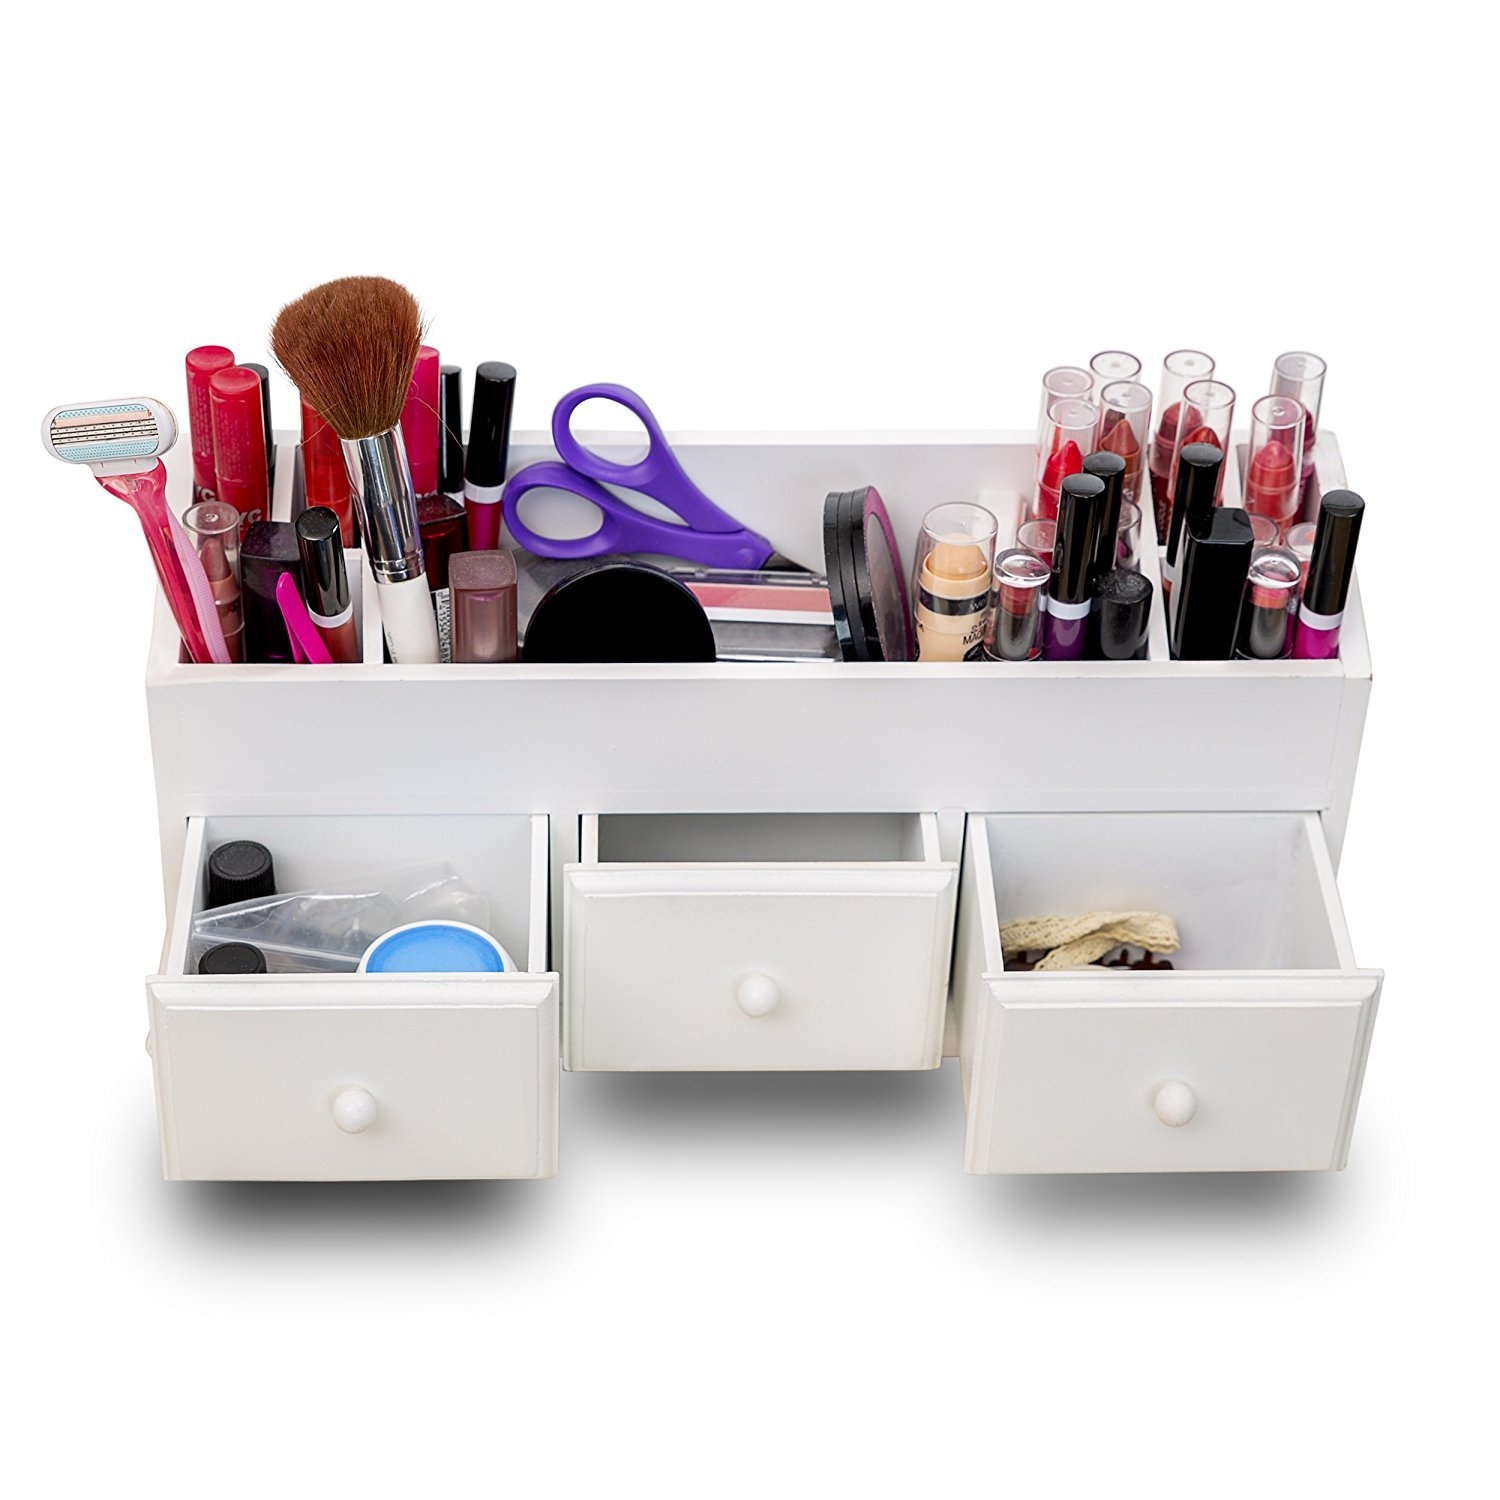 Vanity Drawer Beauty Organizer 3 Drawers - Wooden Cosmetic Storage Box for Neat & Organize Storing of Makeup Tools, Small Accessories at Home & Office Vanities & Bathroom Counter-top (7 Slots)